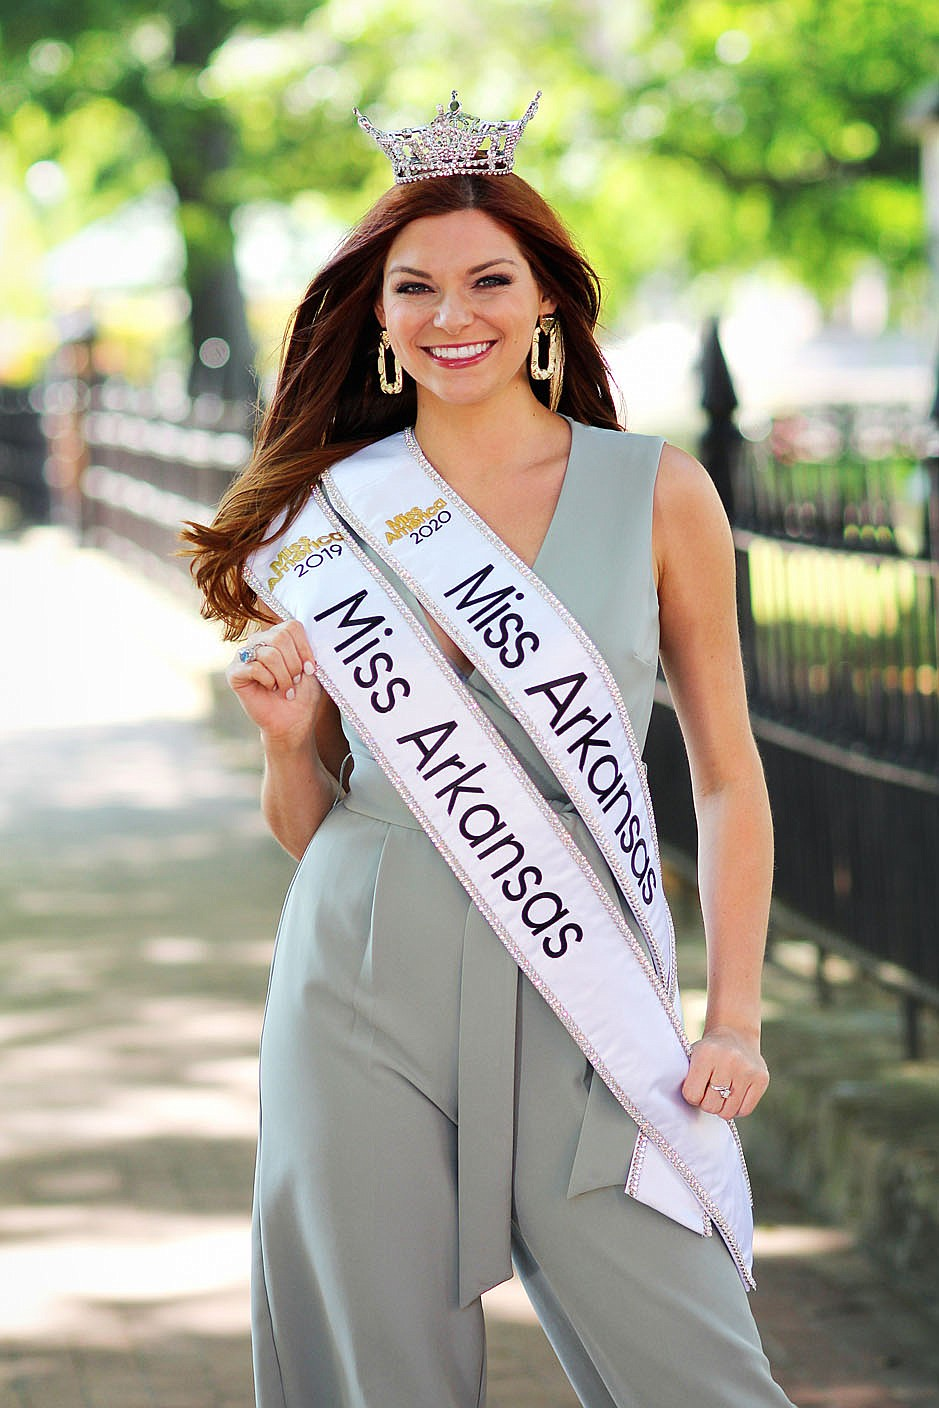 Darynne Dahlem, who grew up in Greenwood and attended the University of Arkansas in Fayetteville, is the first woman to ever serve two terms as Miss Arkansas. Because her reign was extended by the pandemic, she was also in medical school full time during the last half of it.  (Courtesy Photo/West Wind Photography)